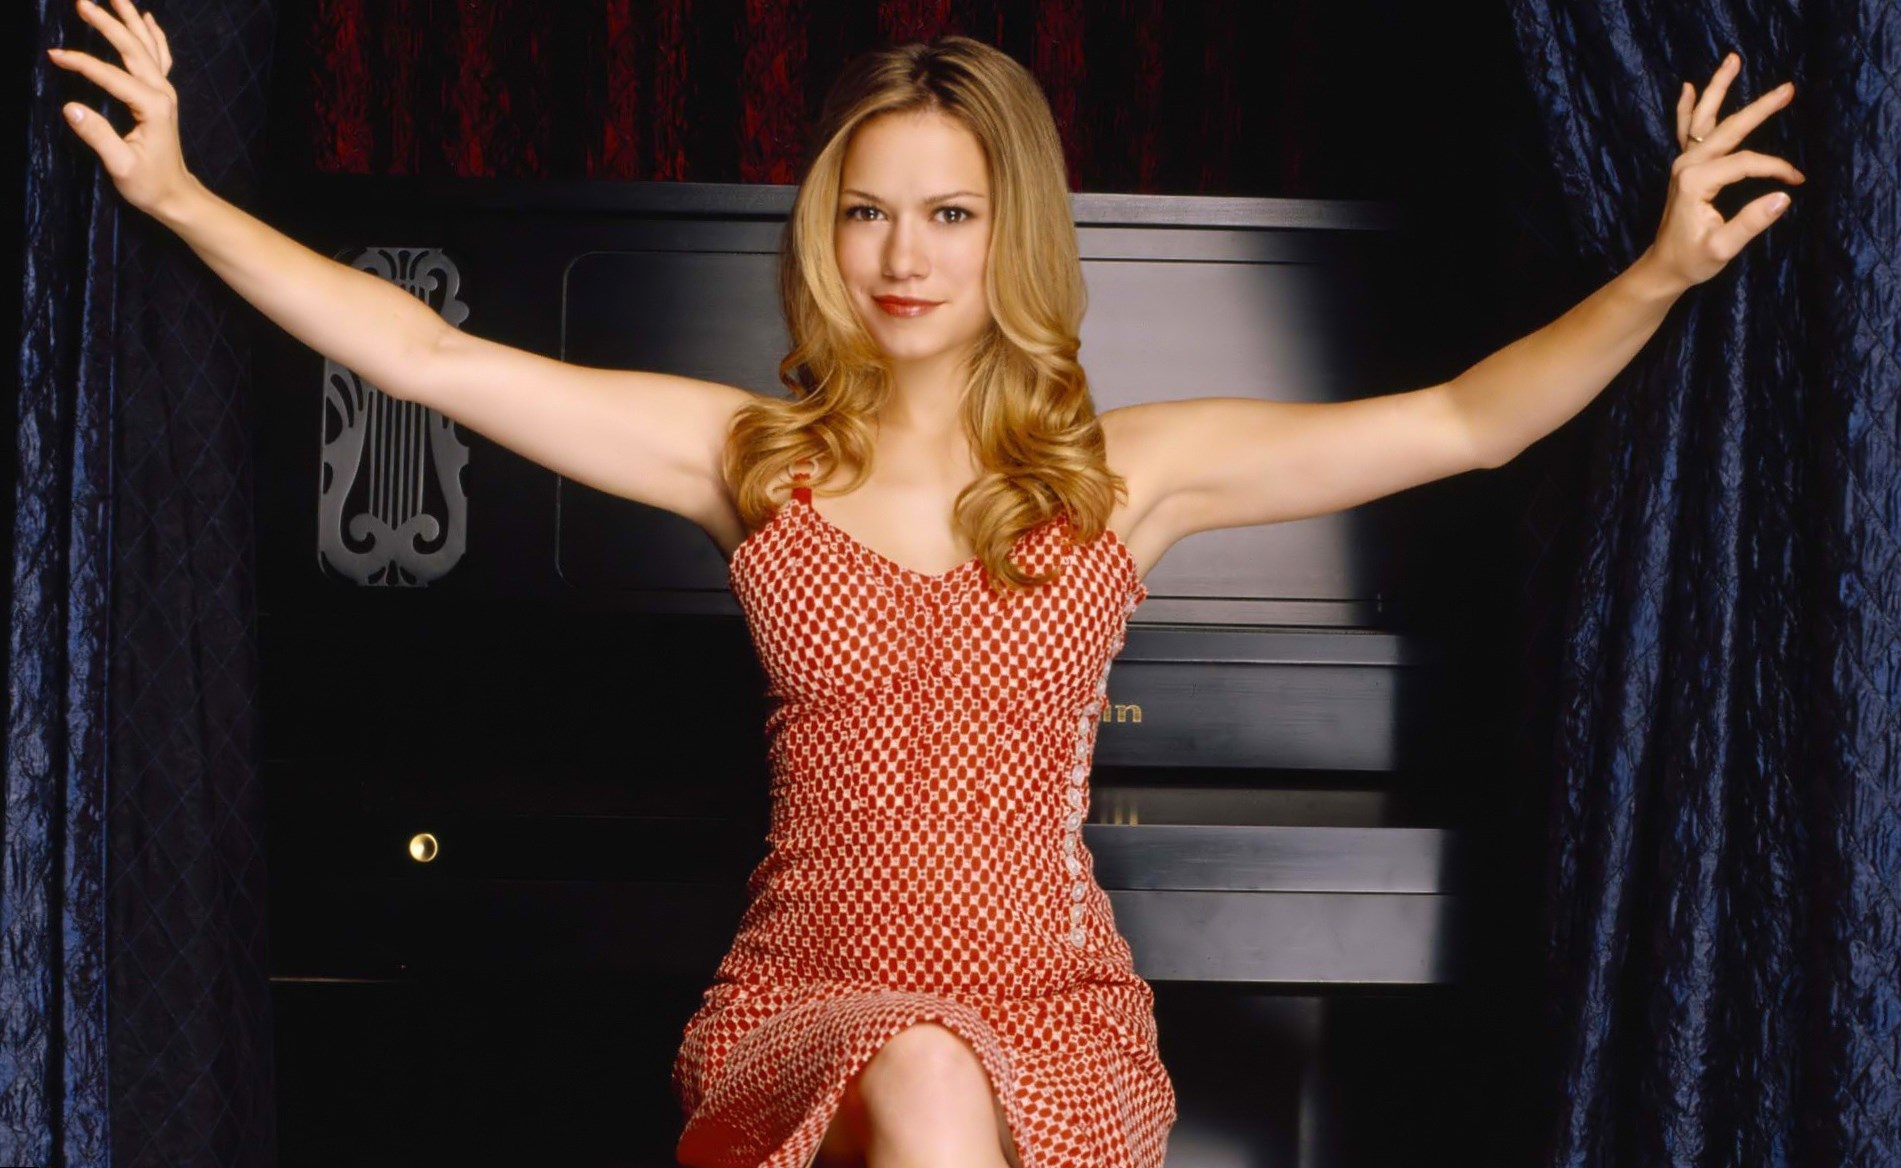 Bethany Joy Lenz  Height, Weight and Body Measurements